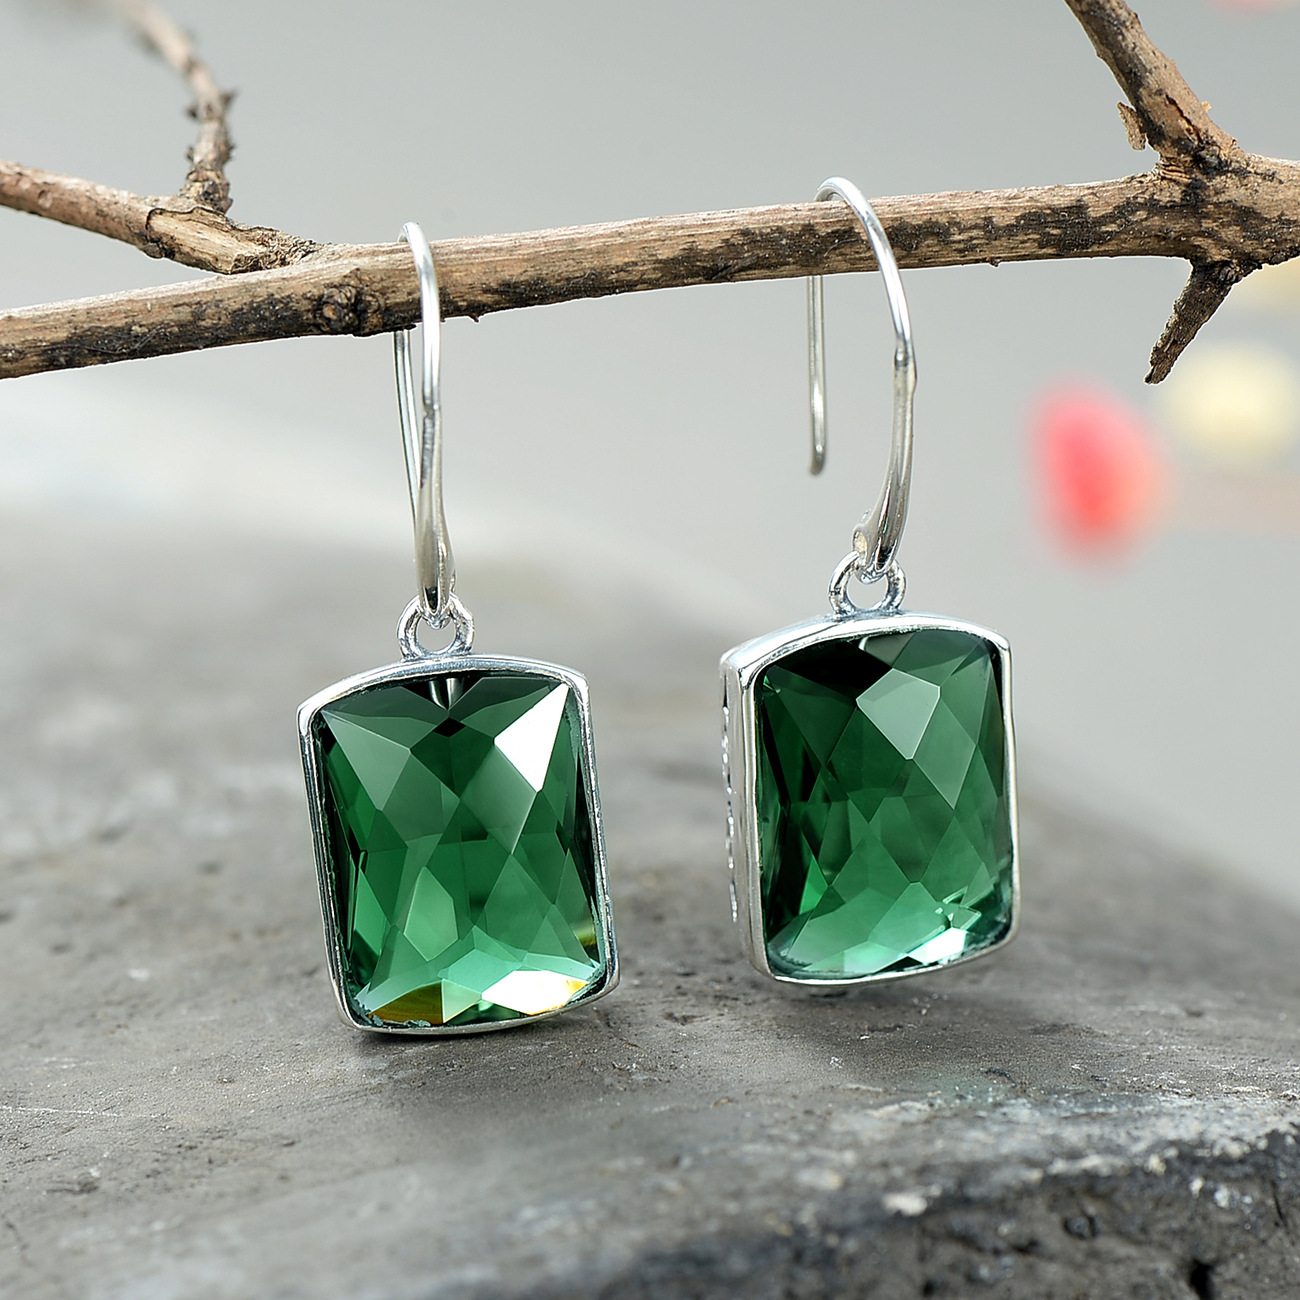 S925 silver inlaid female square cut face, Thai silver green crystal earrings silver jewelry earrings wholesale Earrings thai silver earrings s925 zircon silver inlaid white female antique style earrings atmospheric water